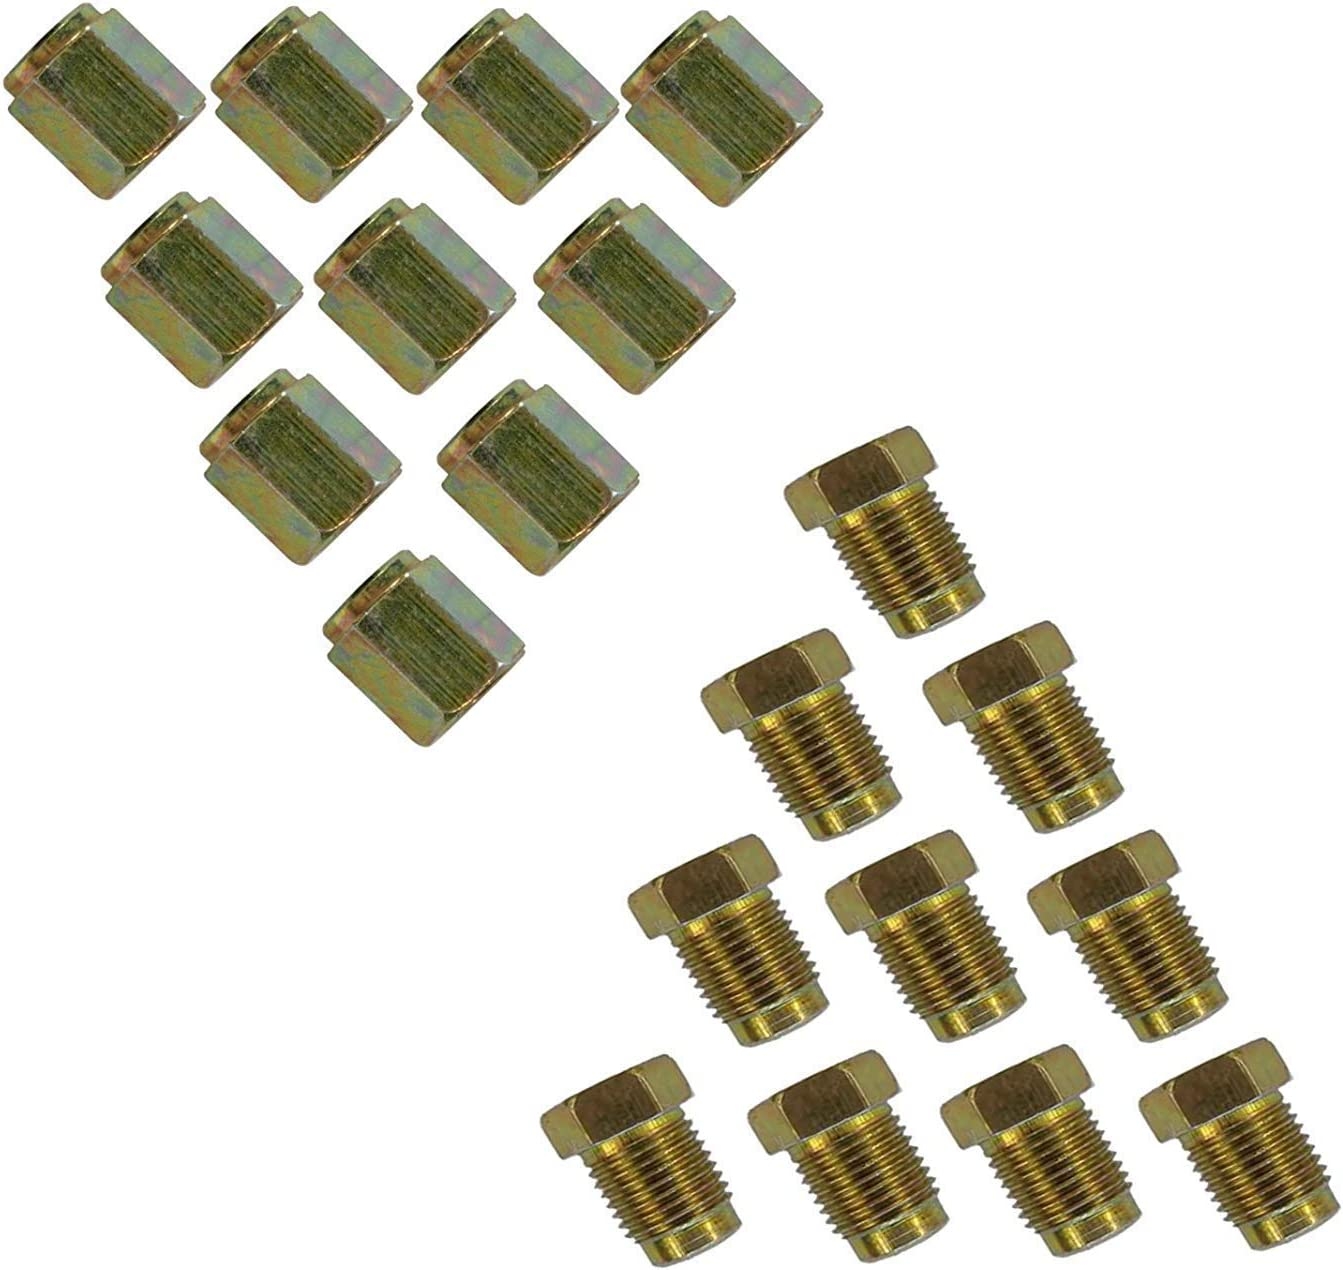 20 pkt 10mm Short Brake Pipe Nuts 10 x MALE 10 x FEMALE for 3//16 pipe Metric